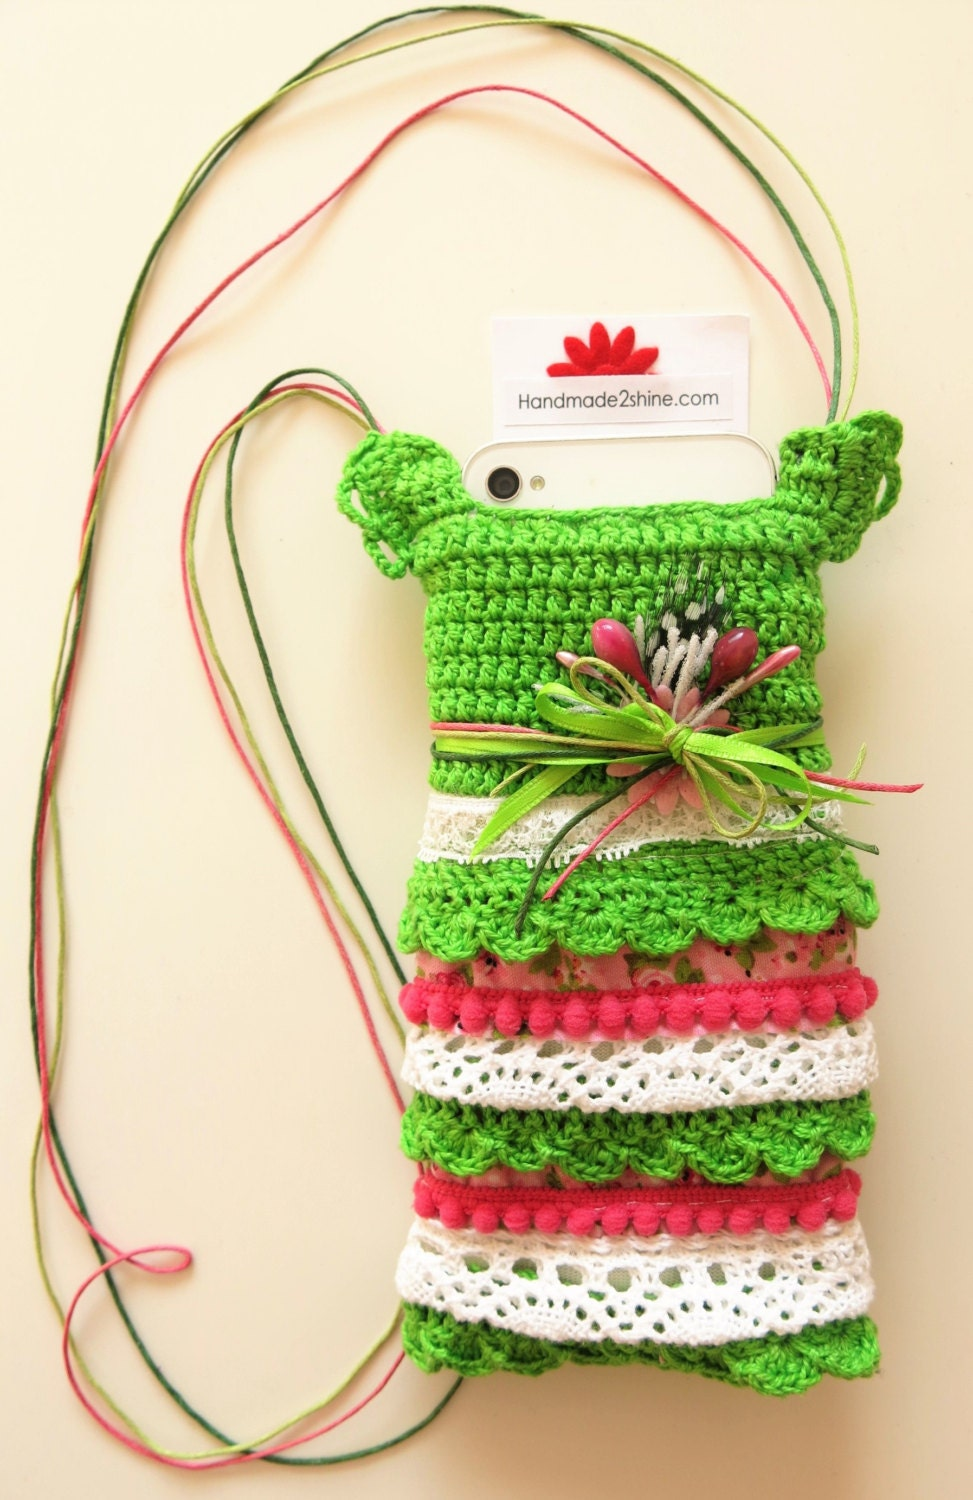 Iphone case  necklace bag glasses  iPod Case  handmade2shine crocheted green pink white handytasche  funda movil  fabric case